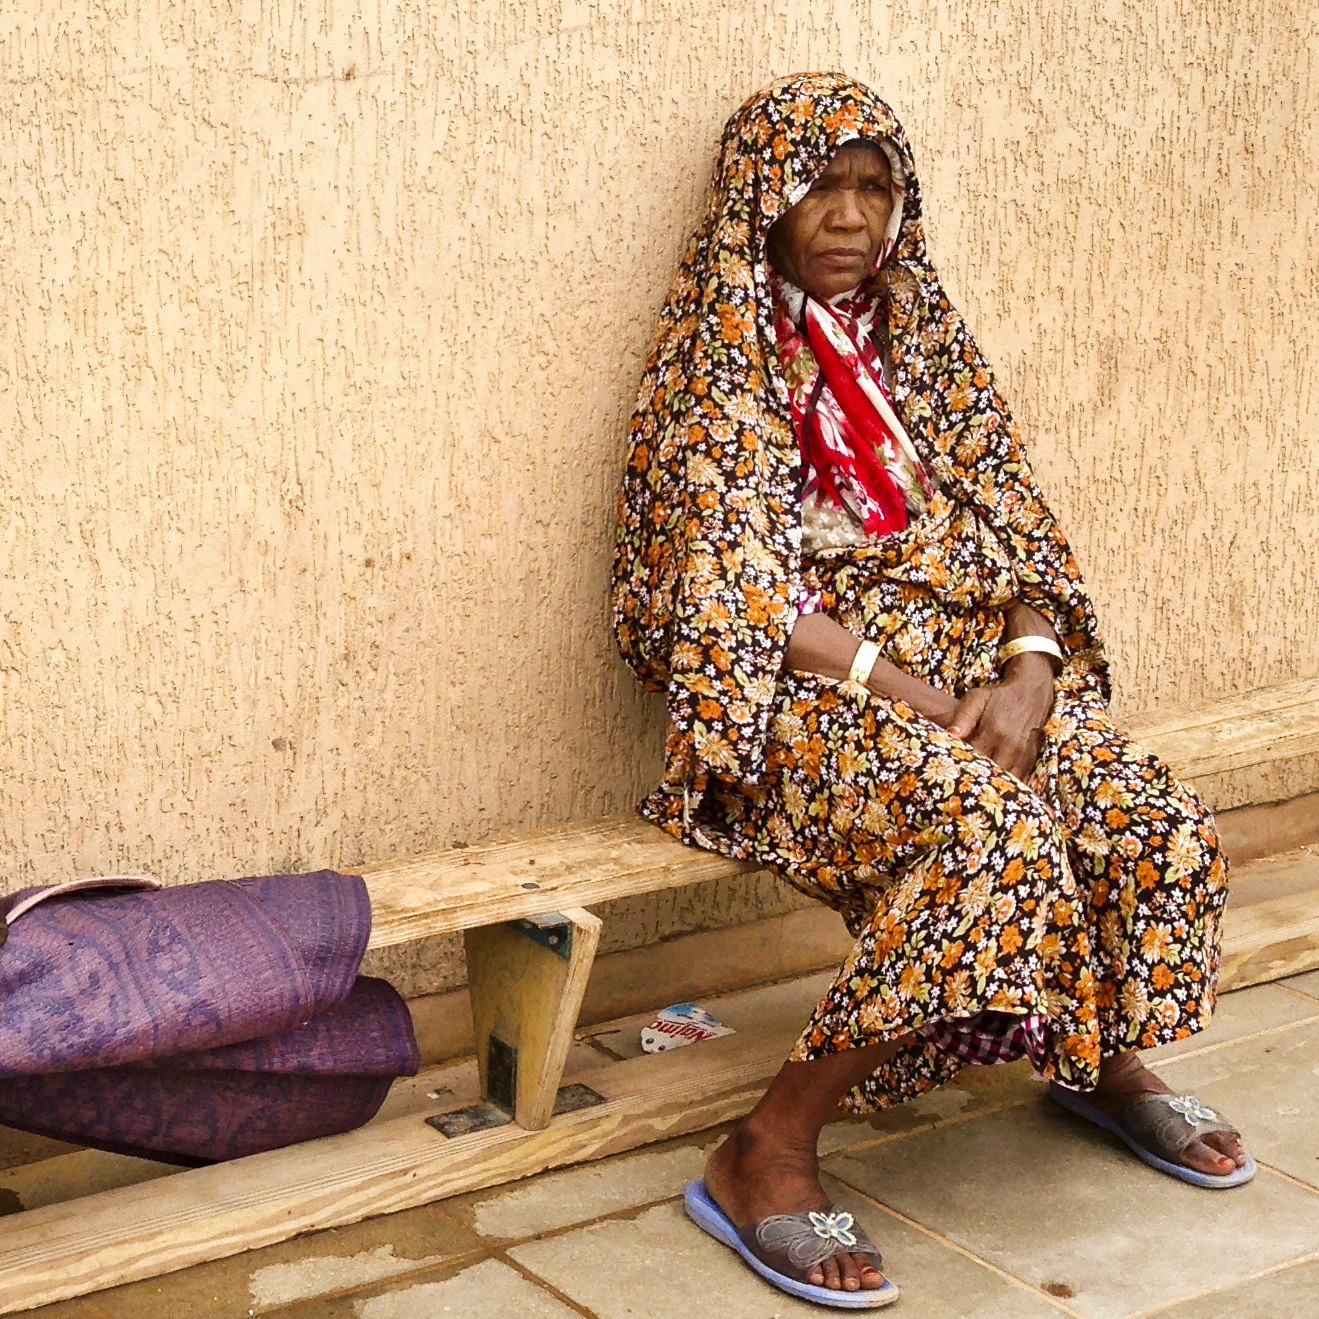 A Tawarghan woman sits outside at a makeshift camp where thousands of displaced Tawarghans live after being driven from their homes by Misratan militiamen.